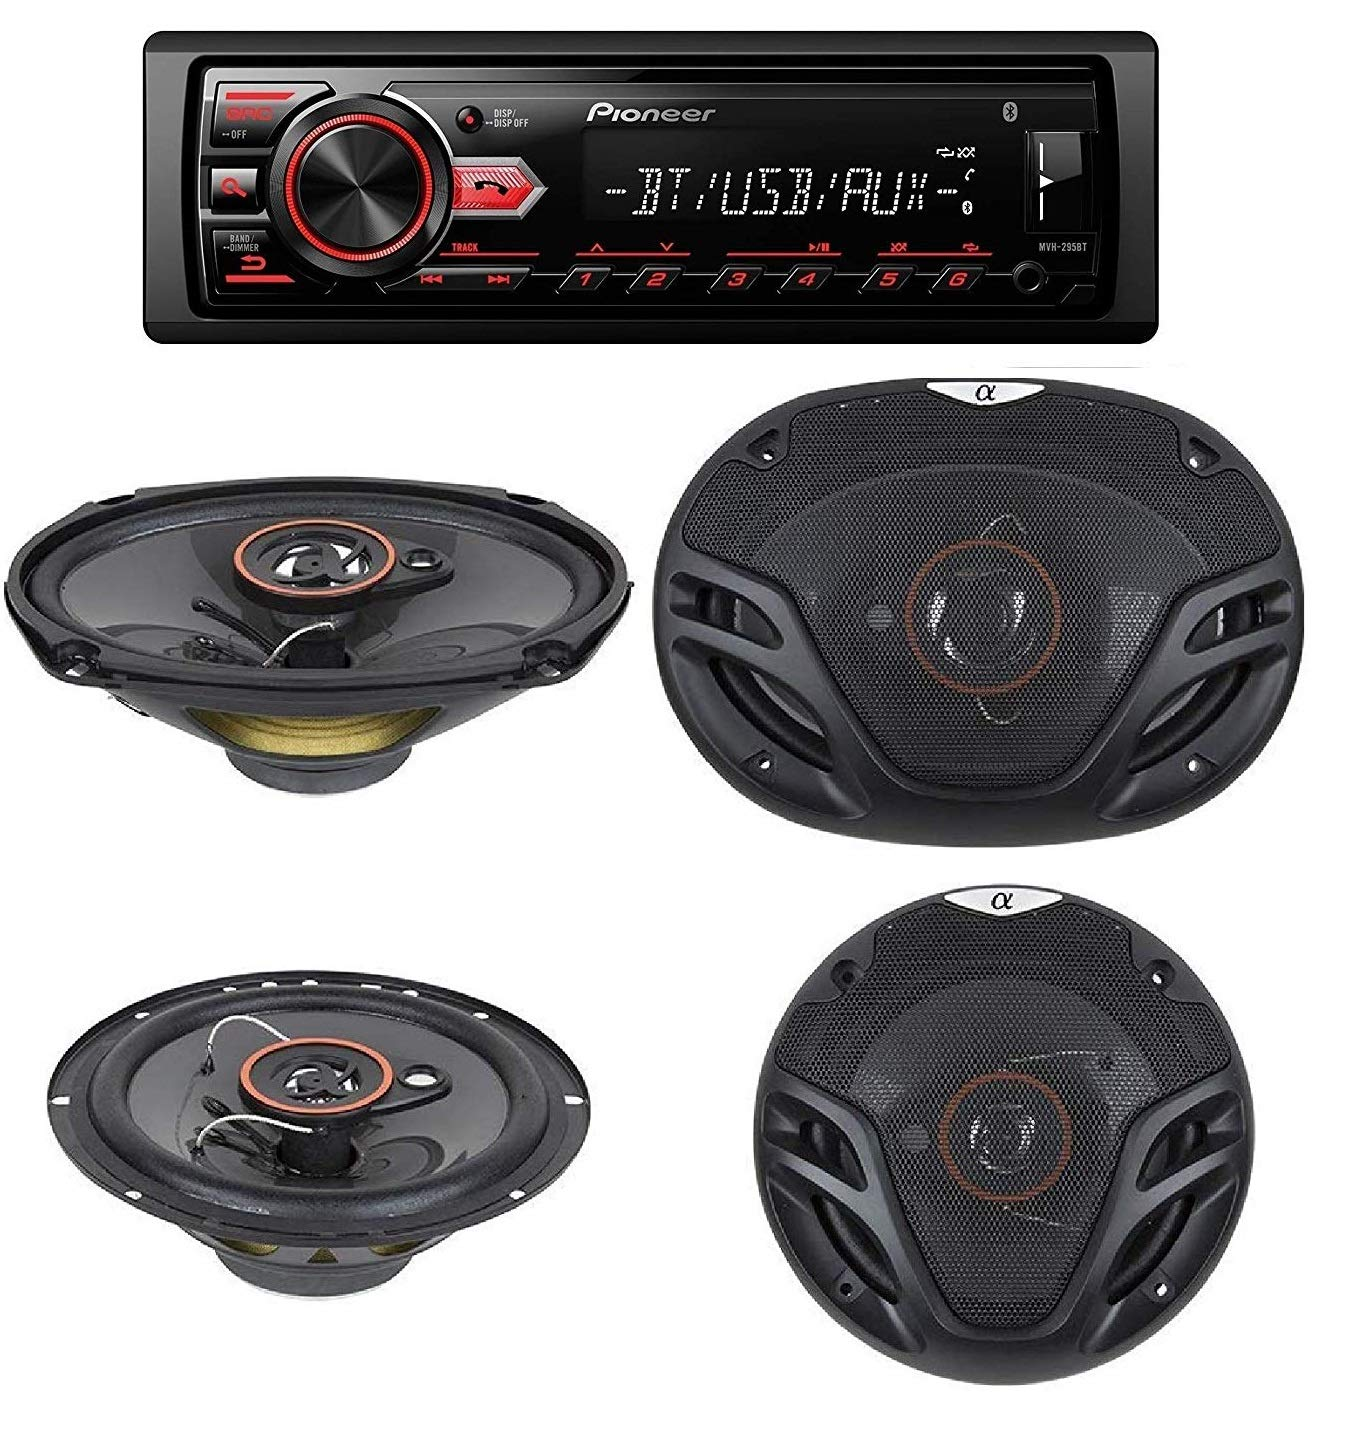 "Pioneer MVH-295BT Stereo Single DIN Bluetooth In-Dash USB MP3 Auxiliary AM/FM/Digital Media Pandora and Spotify Car Stereo Receiver With pair of 6.5"" and pair of 6x9"" Alphasonik Speakers"